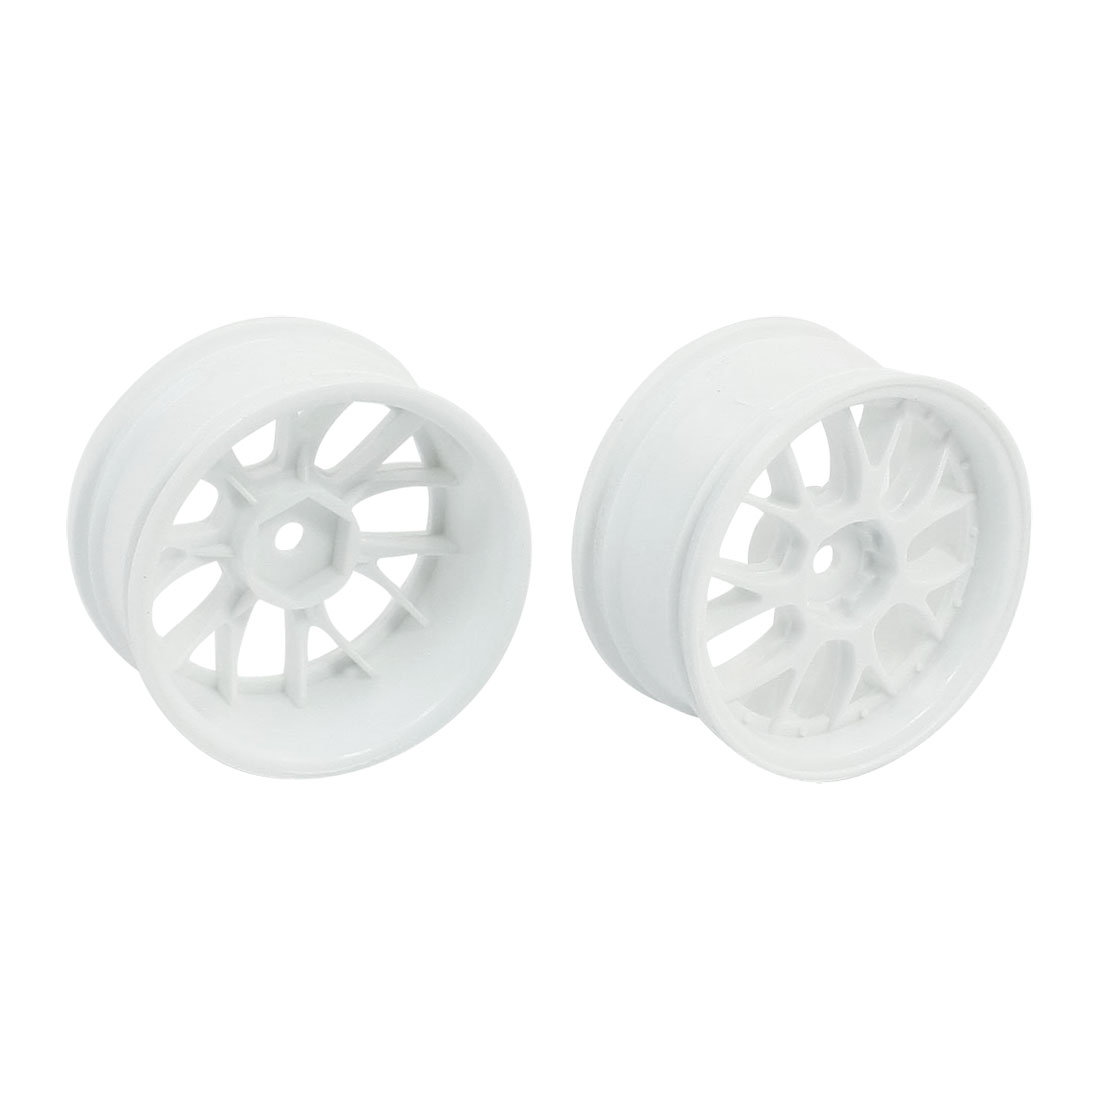 2pcs White 3mm Shaft 52mm Wheel Tire for RC Model 1:10 Flat Racing Car Vehicle